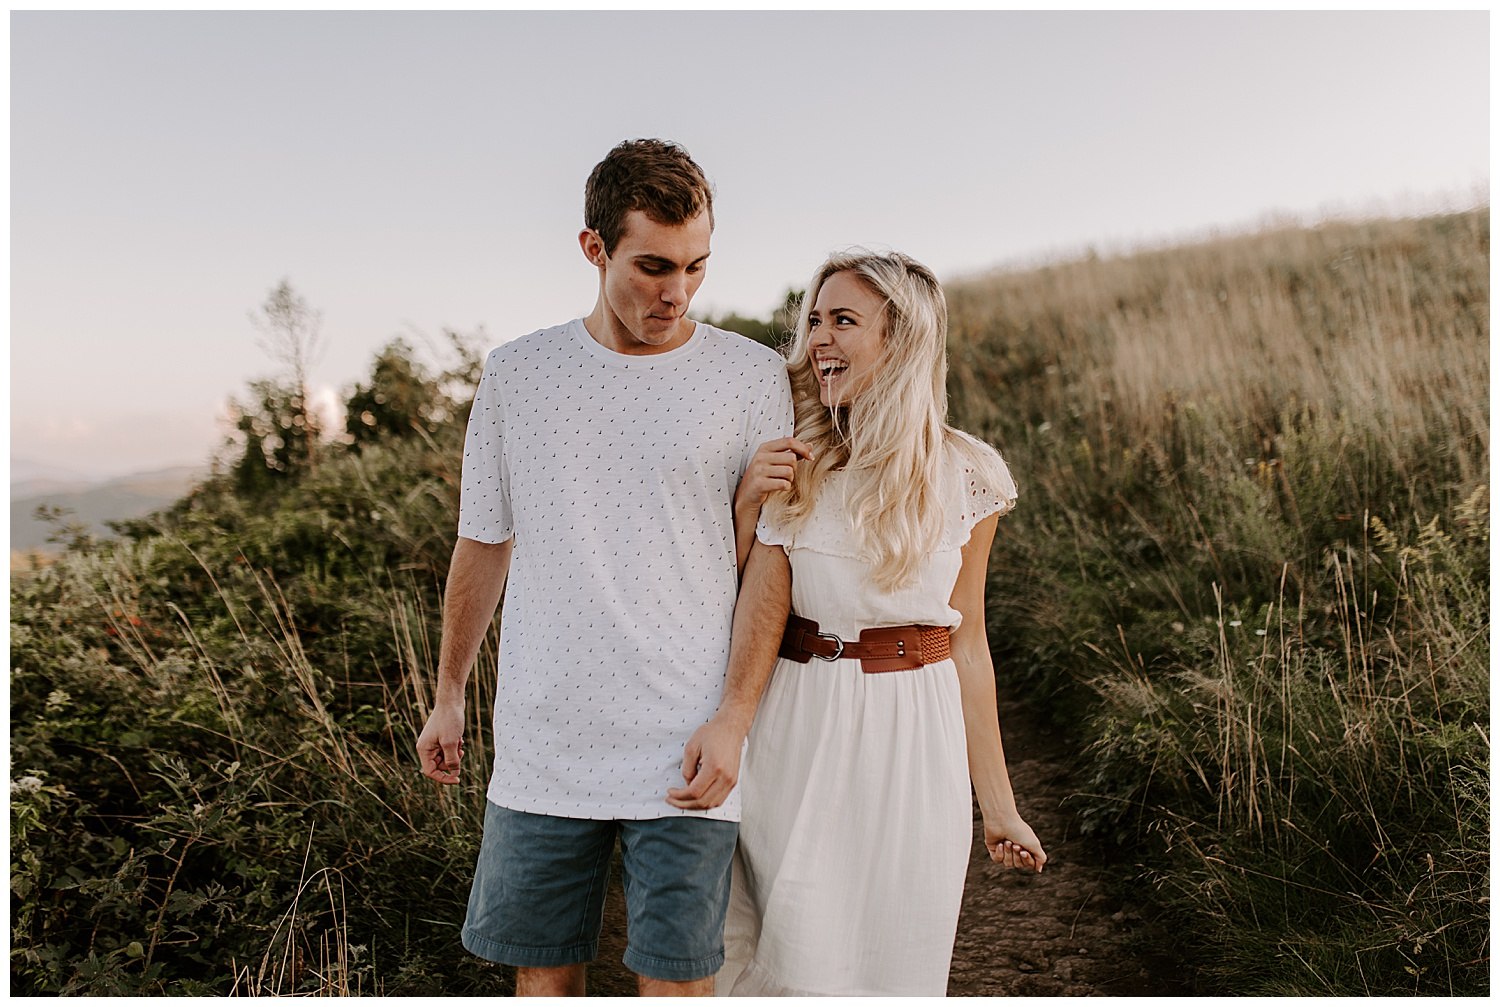 HANNAH_NICK_MAXPATCH_ENGAGEMENT2019-09-05_0011.jpg